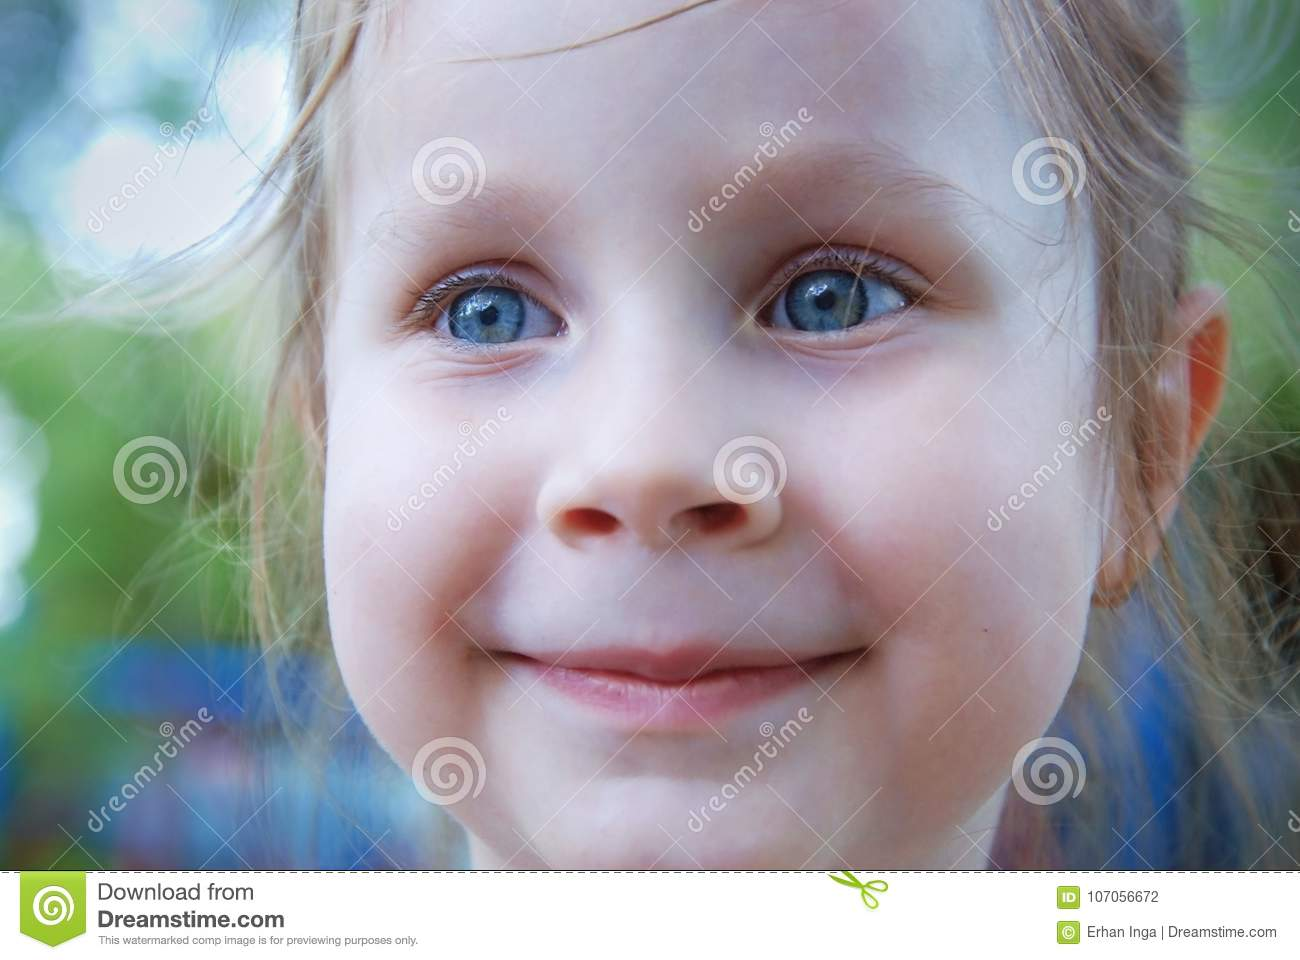 Little Girl with Blue Eyes Smiling over Blured Summer Background.